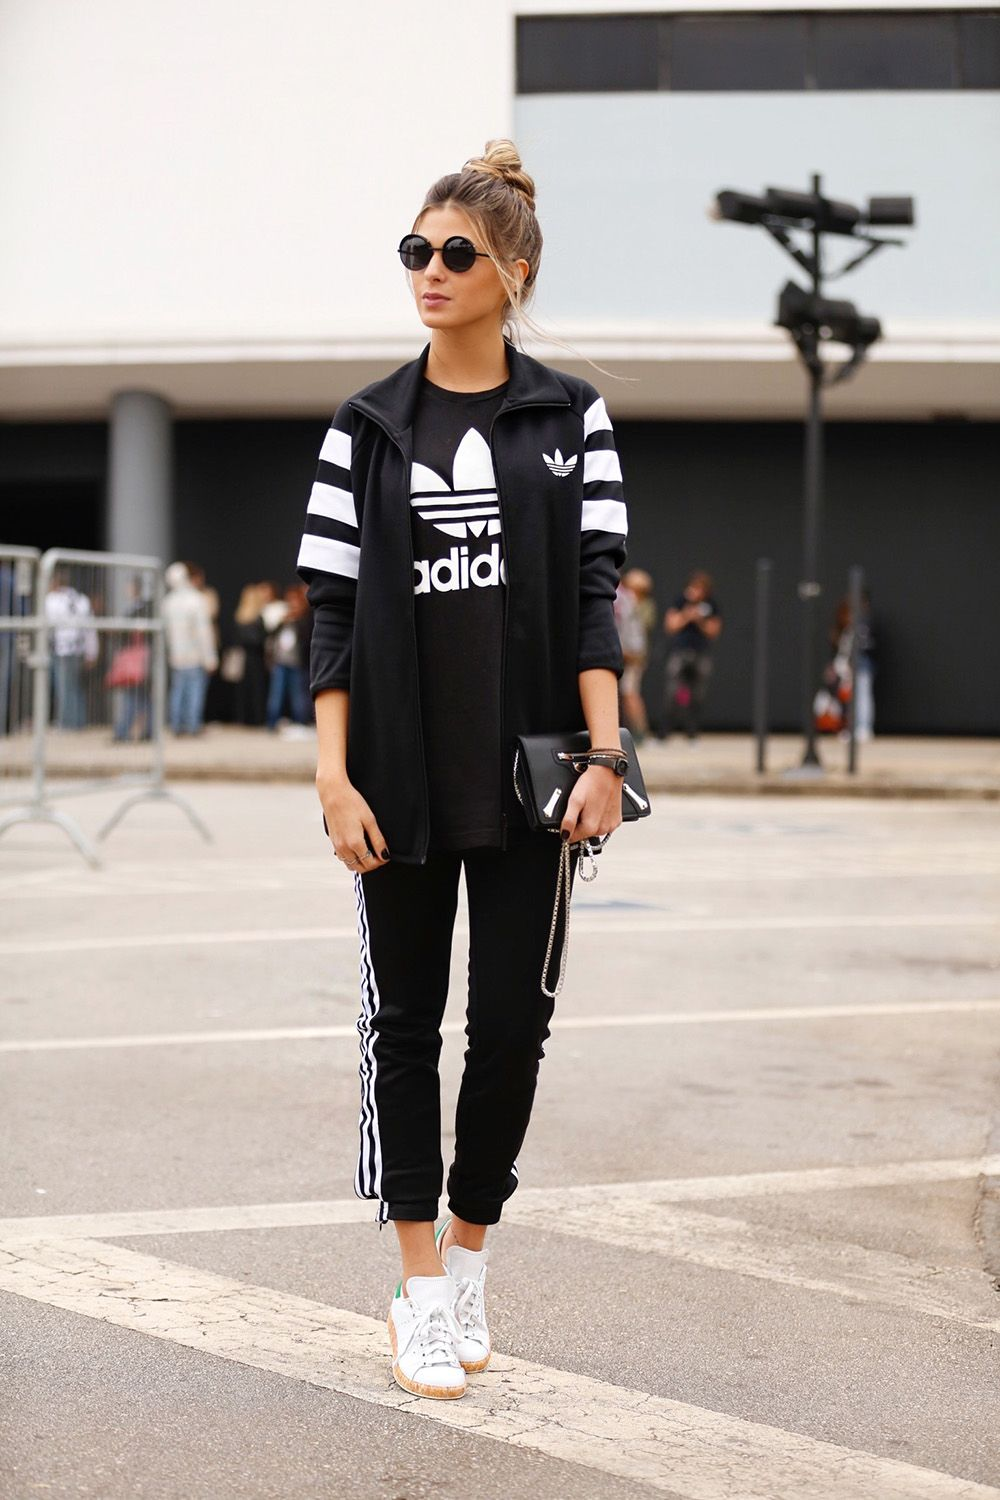 Nothing beats the classy ness of Sneakers on a Girl   Sportswear ... f1658b68d4